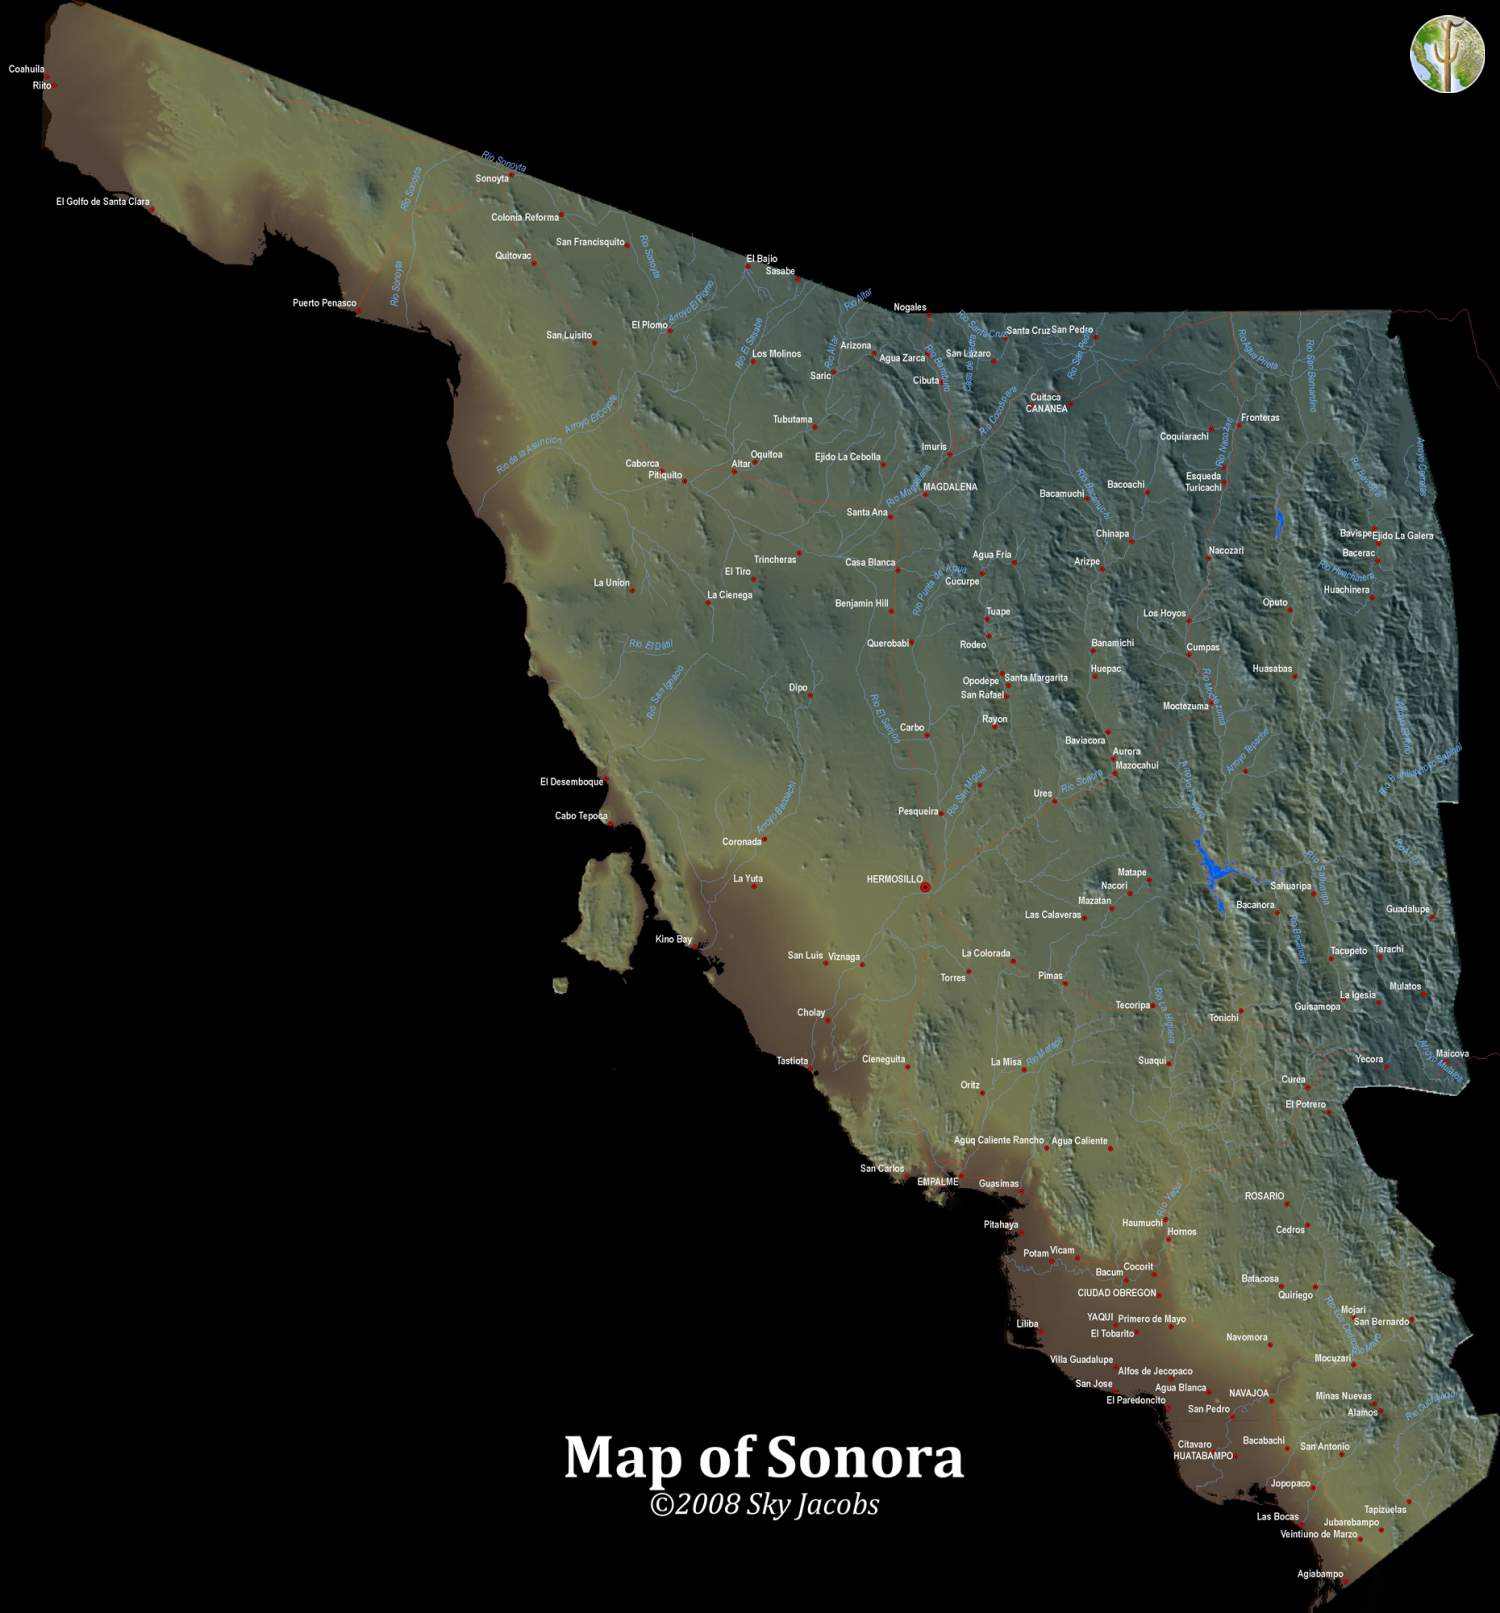 Map of topography, major roads, and rivers of Sonora, Mexico